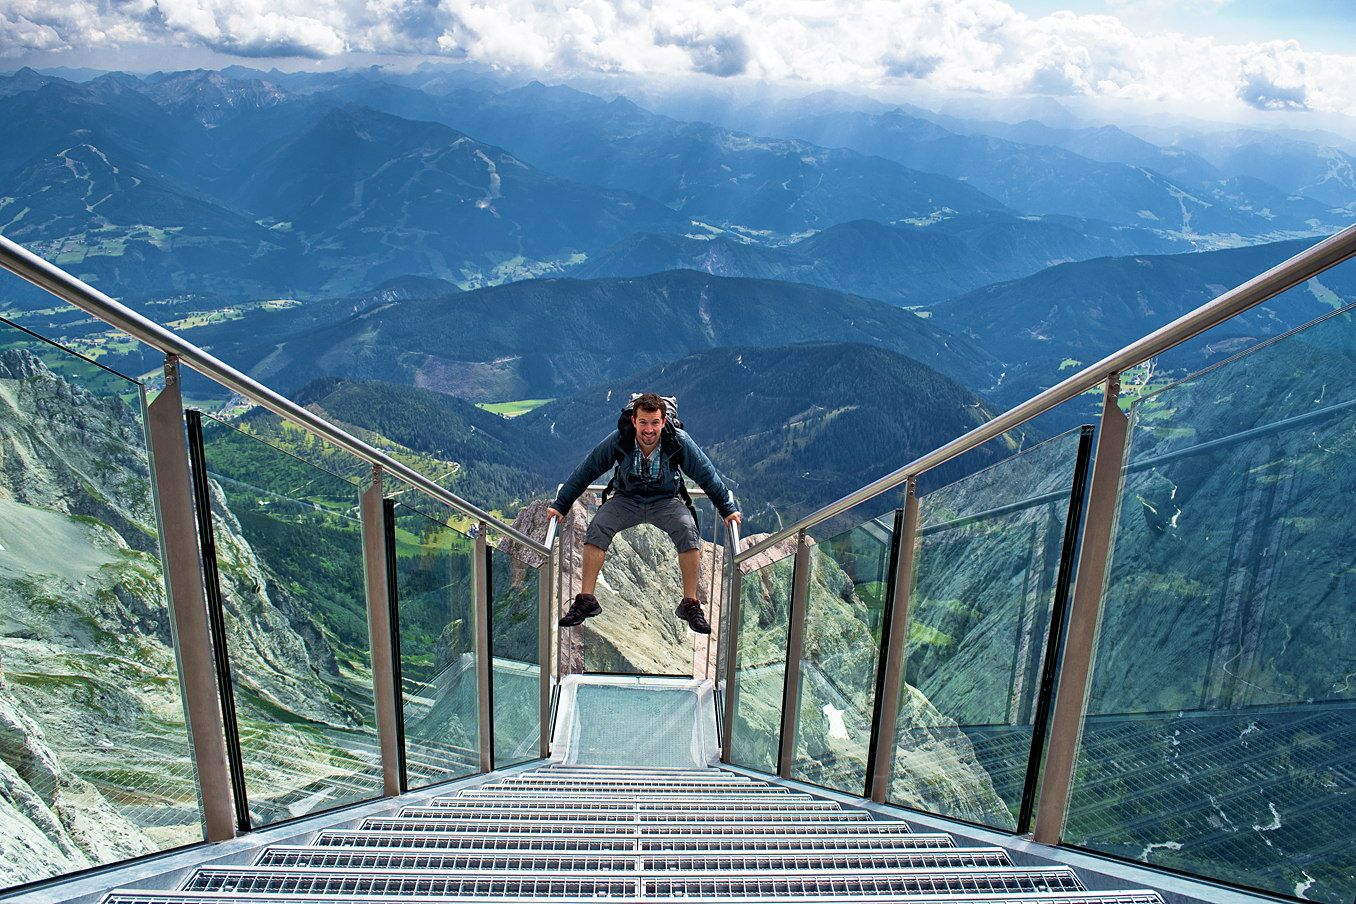 Dachstein Stairway – Austria AKA stairway to Nothingness | Scary bridges,  Natural landmarks, Adventure is out there